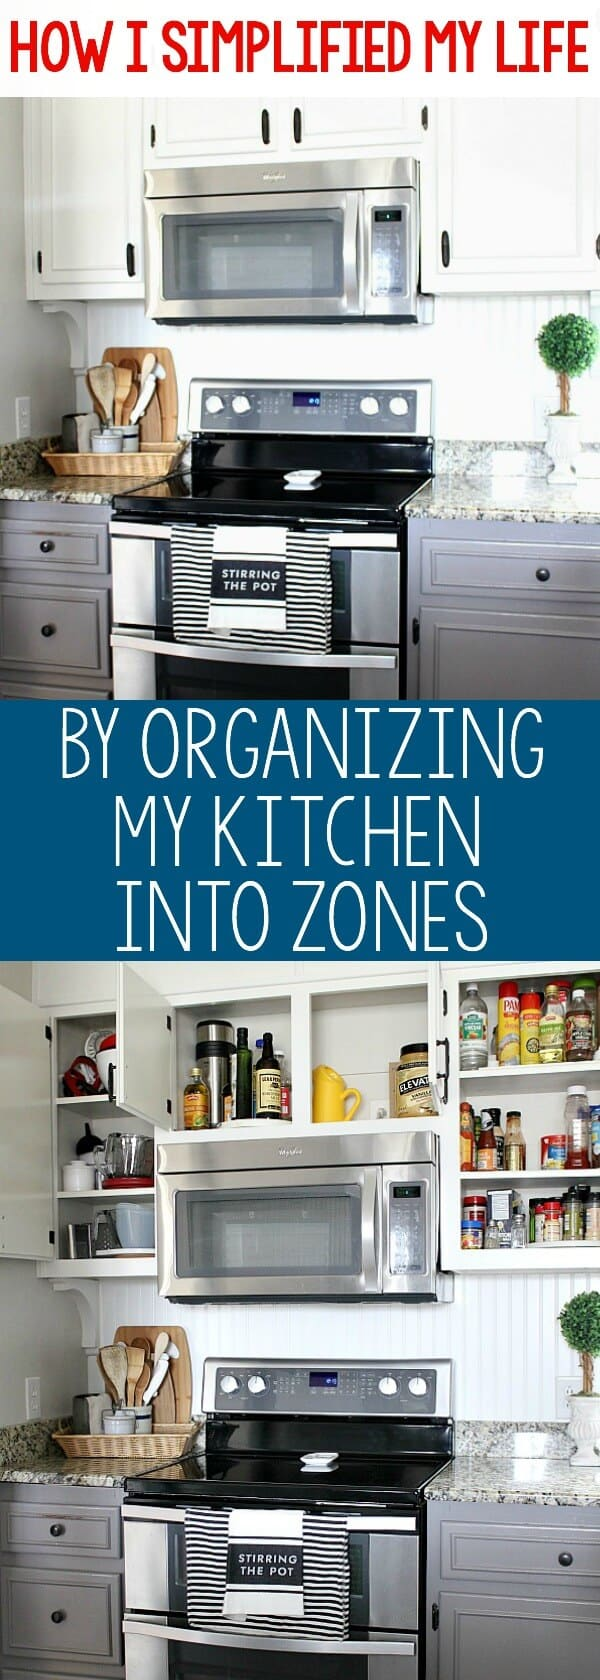 How I\'ve Simplified My Life by Organizing My Kitchen Into Zones ...